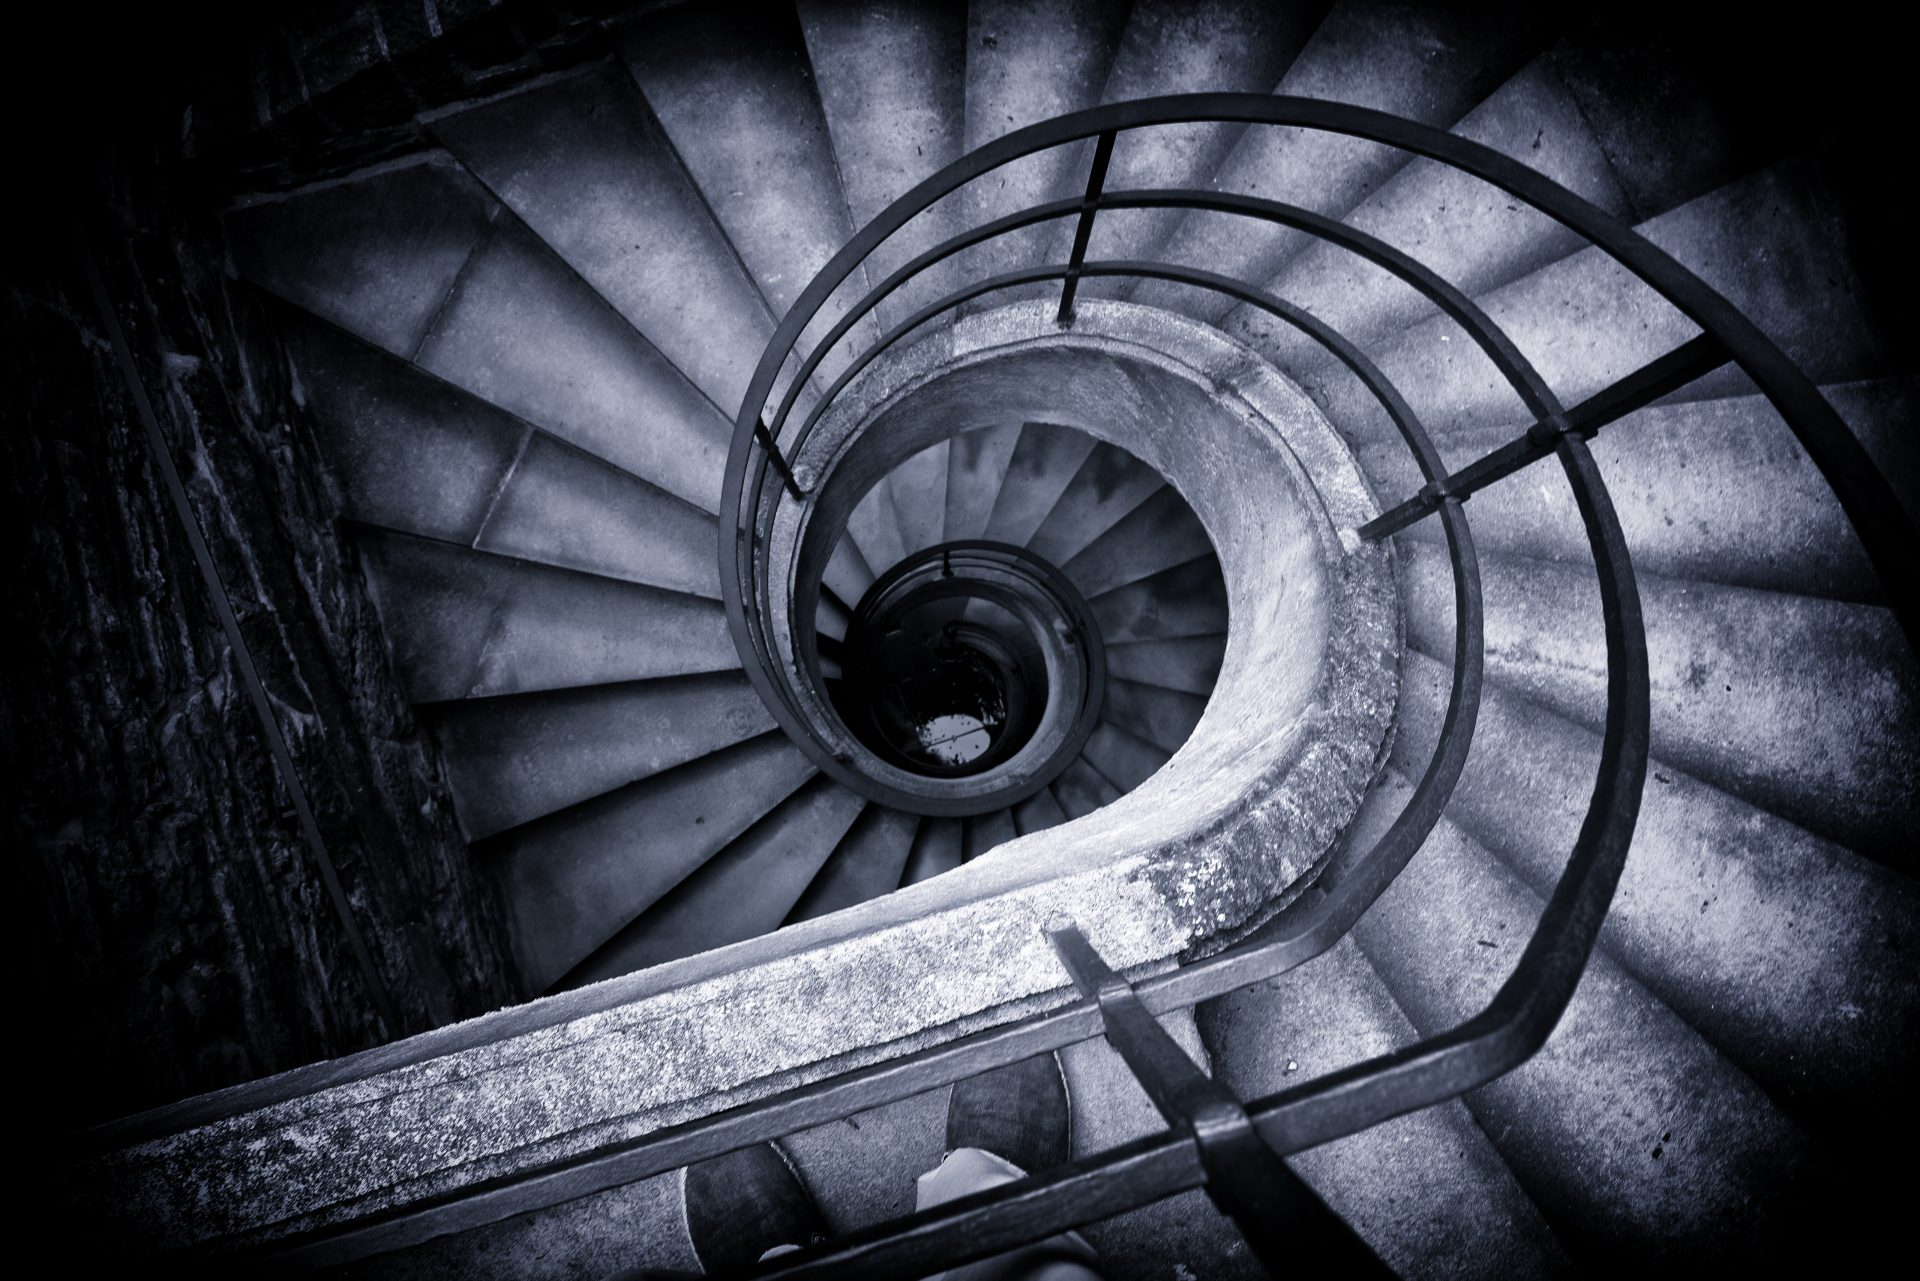 black-and-white-high-angle-view-of-spiral-staircase-winding-down